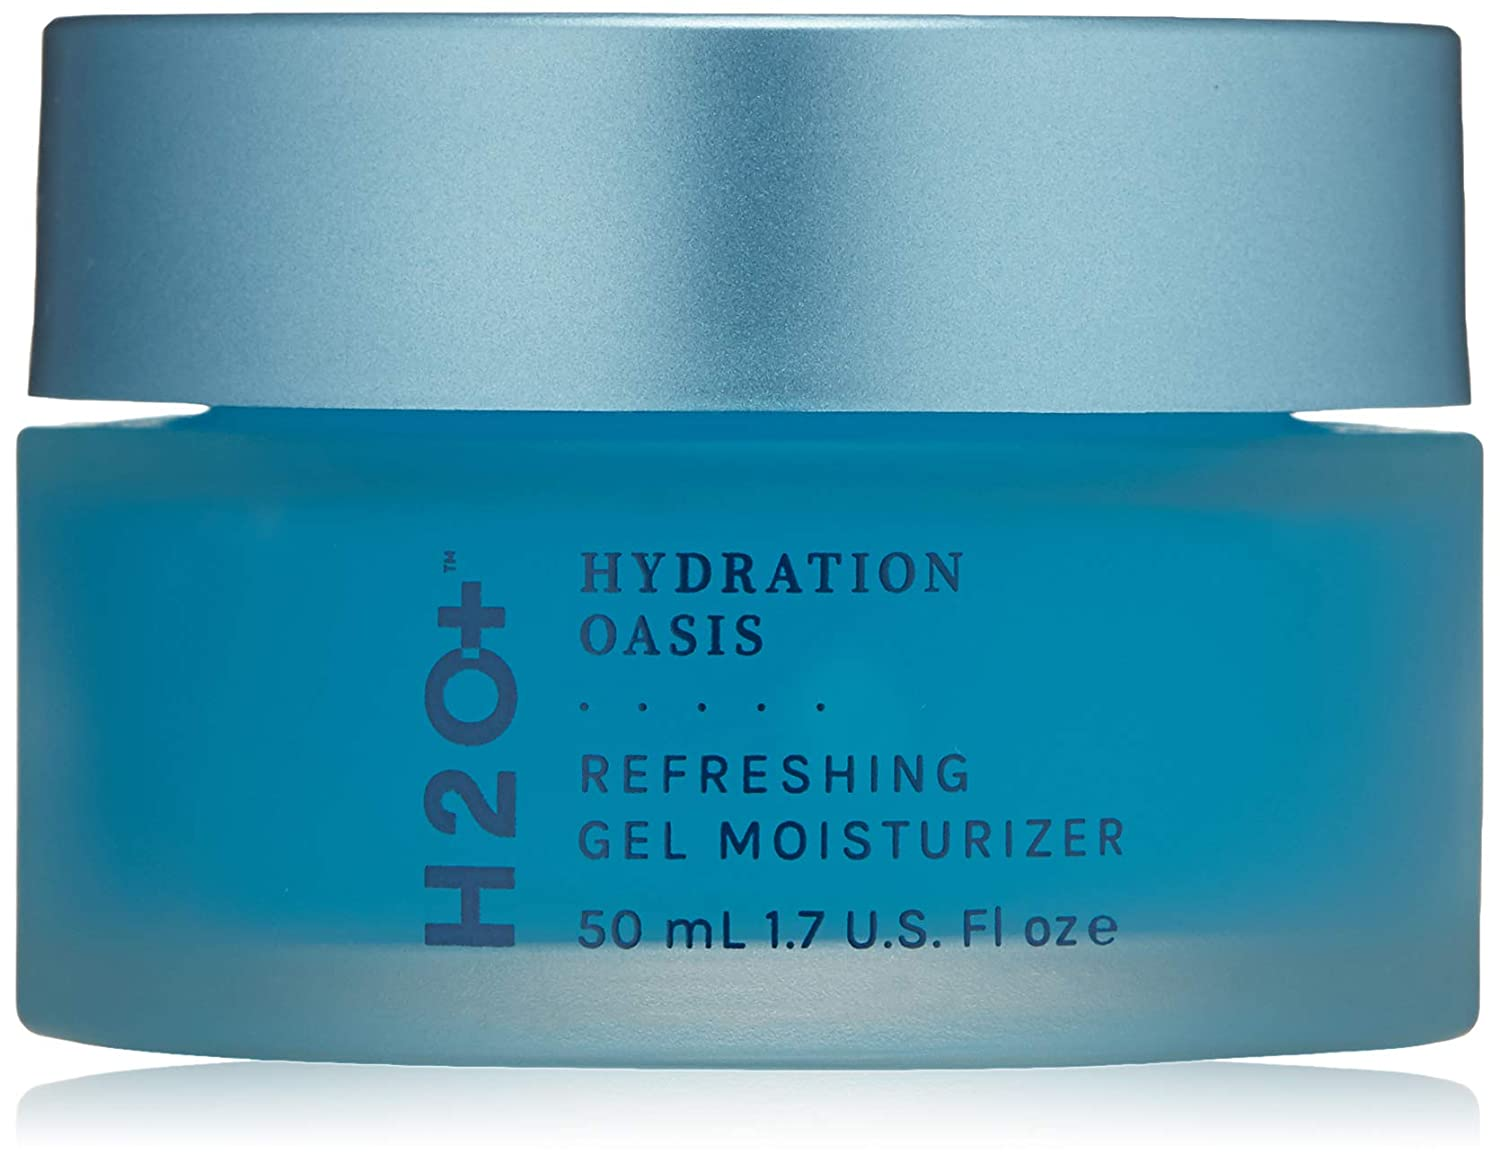 Refreshing Gel Moisturizer for Face with Hyaluronic Acid | H2O+ Japanese Skin Care | Luxury Clean Beauty | Hydration Oasis Collection